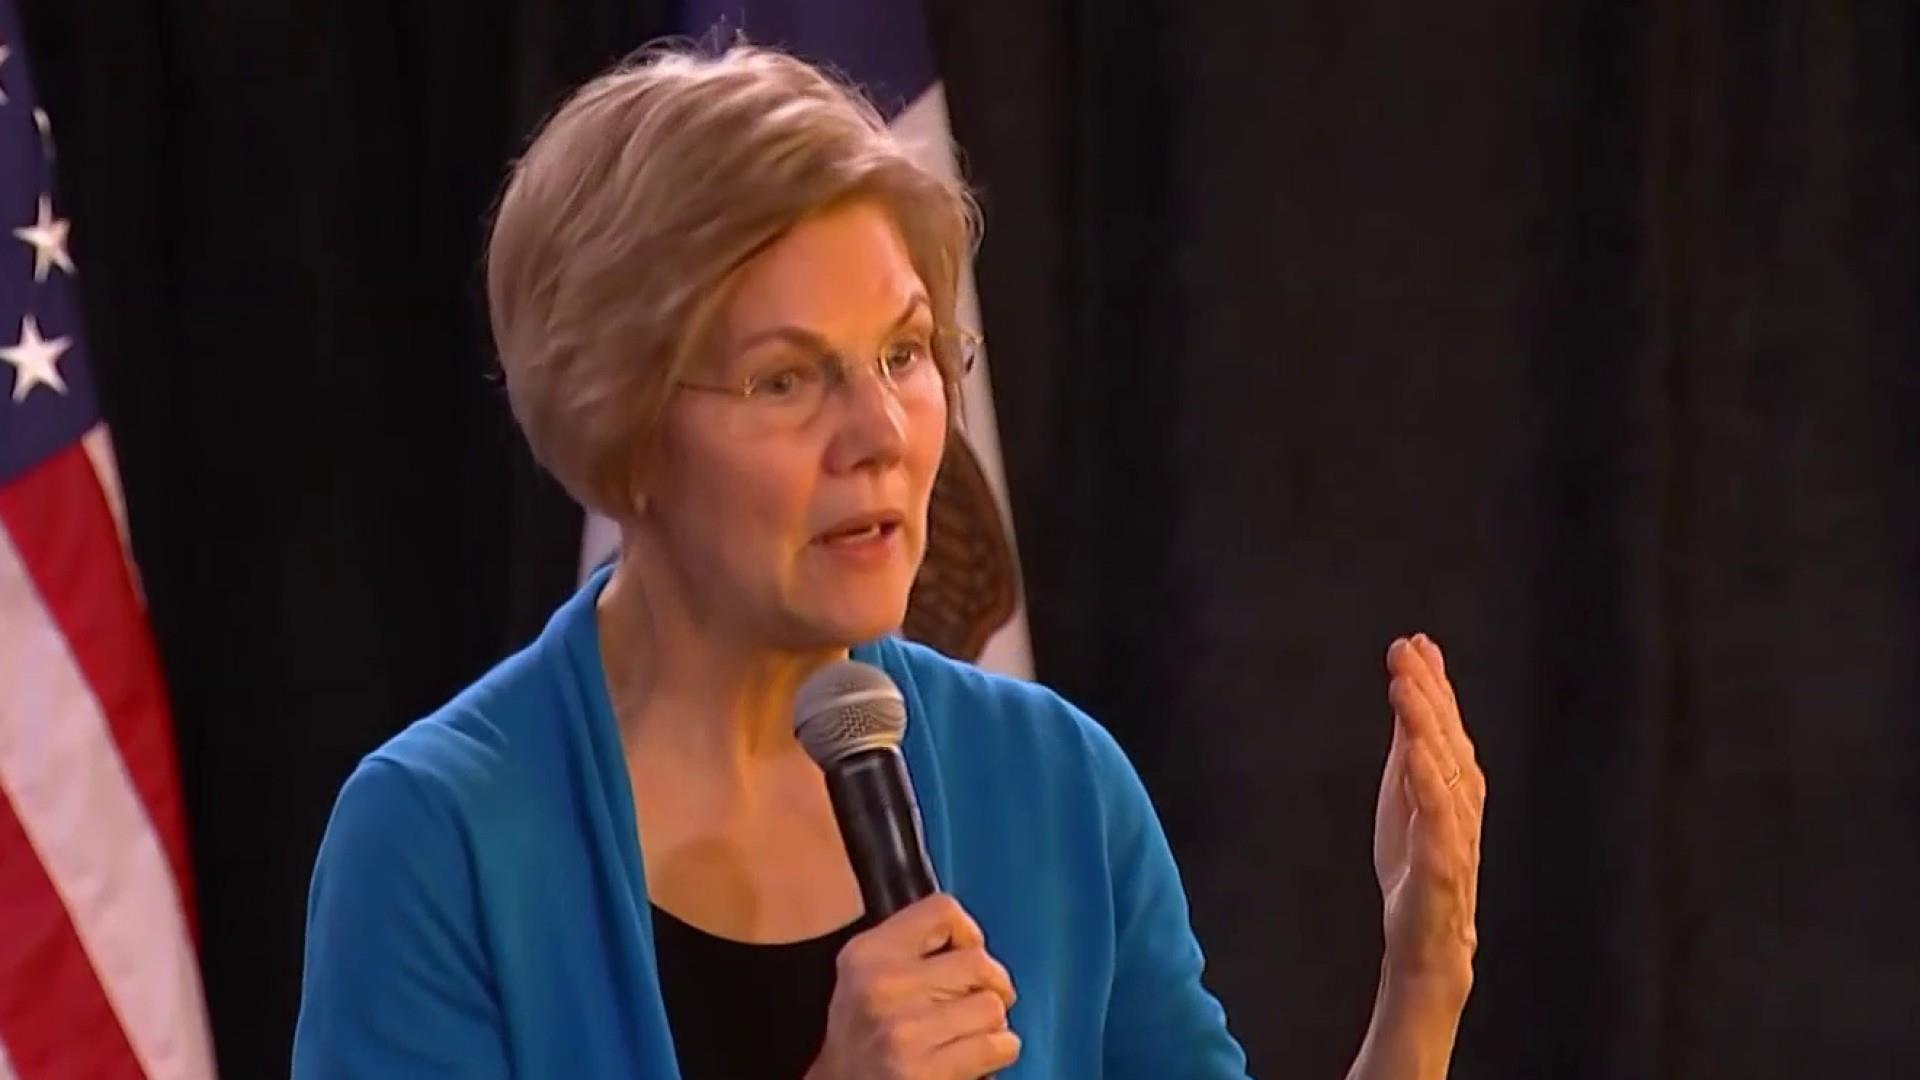 Warren kicks off 2020 taking voters' questions